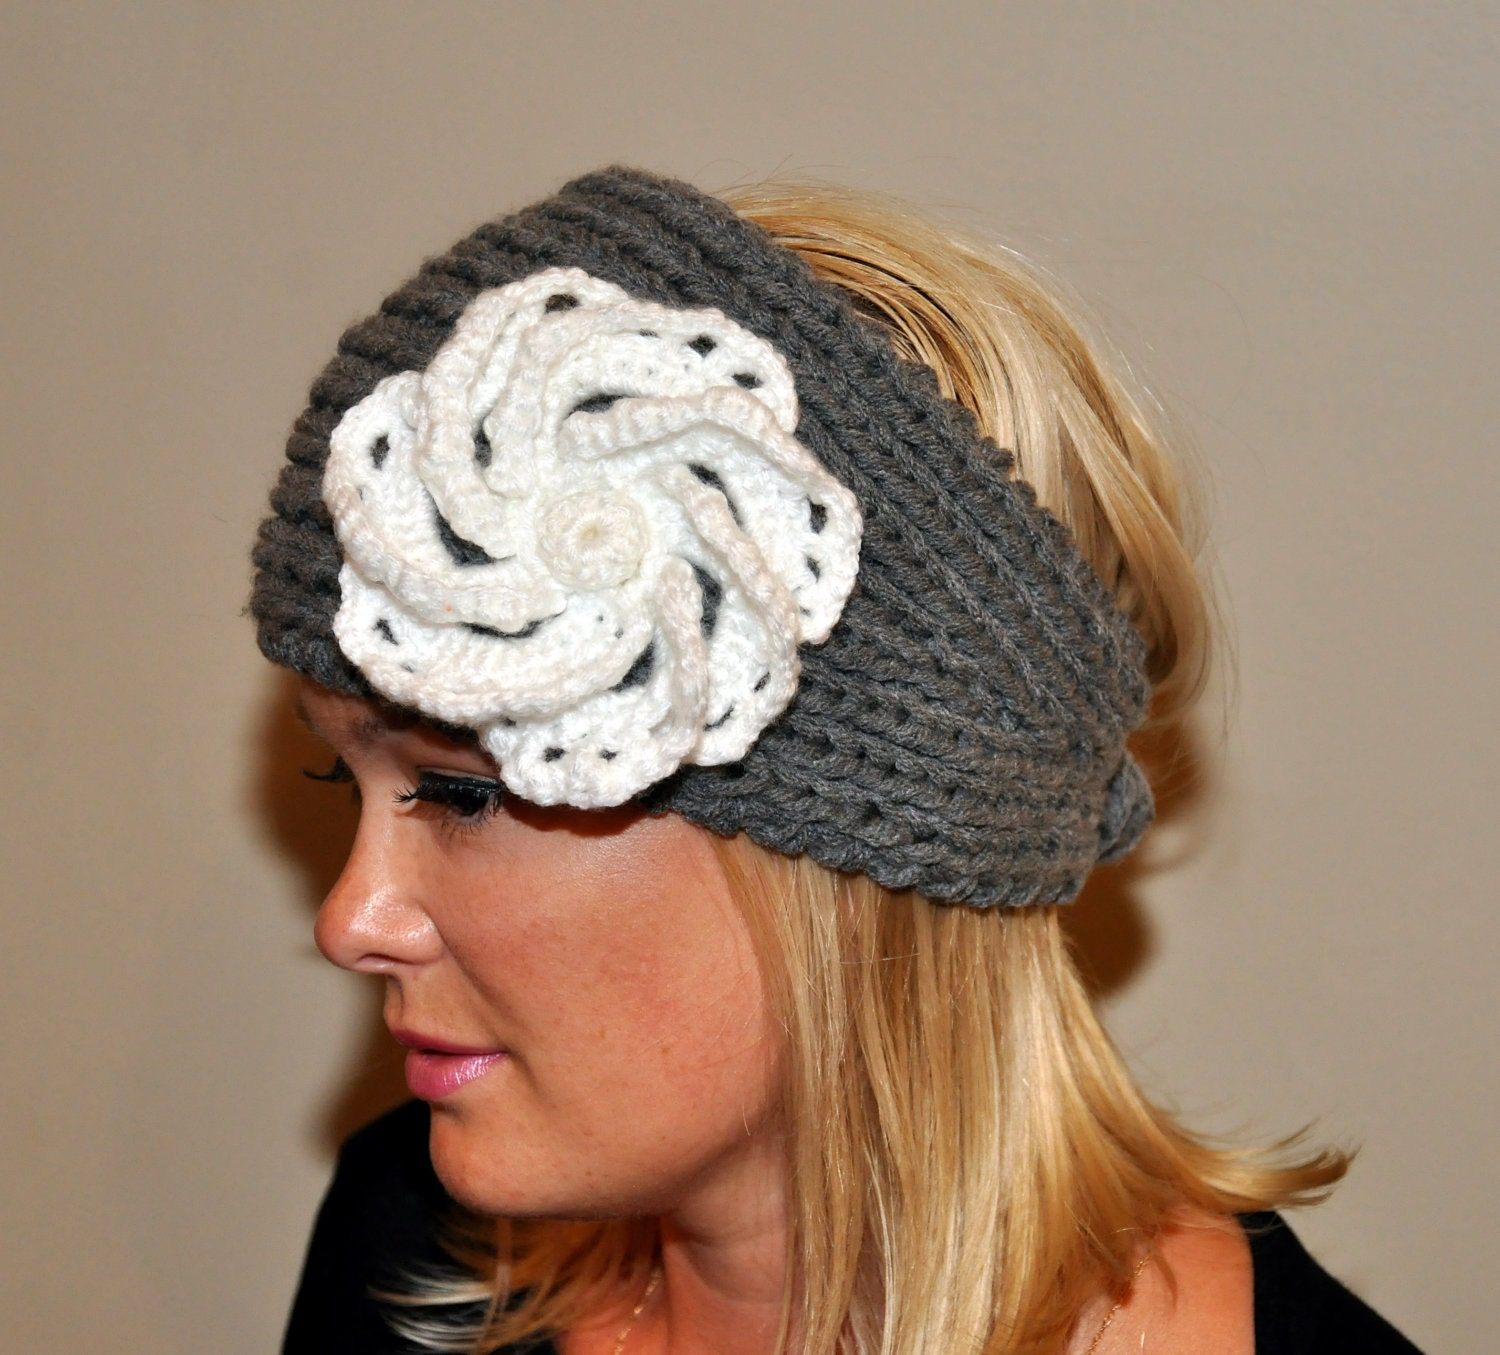 Free Crochet Pattern For Softball Headband : Crochet HEADBAND Ear warmer Headwrap Cozy Gray White by ...